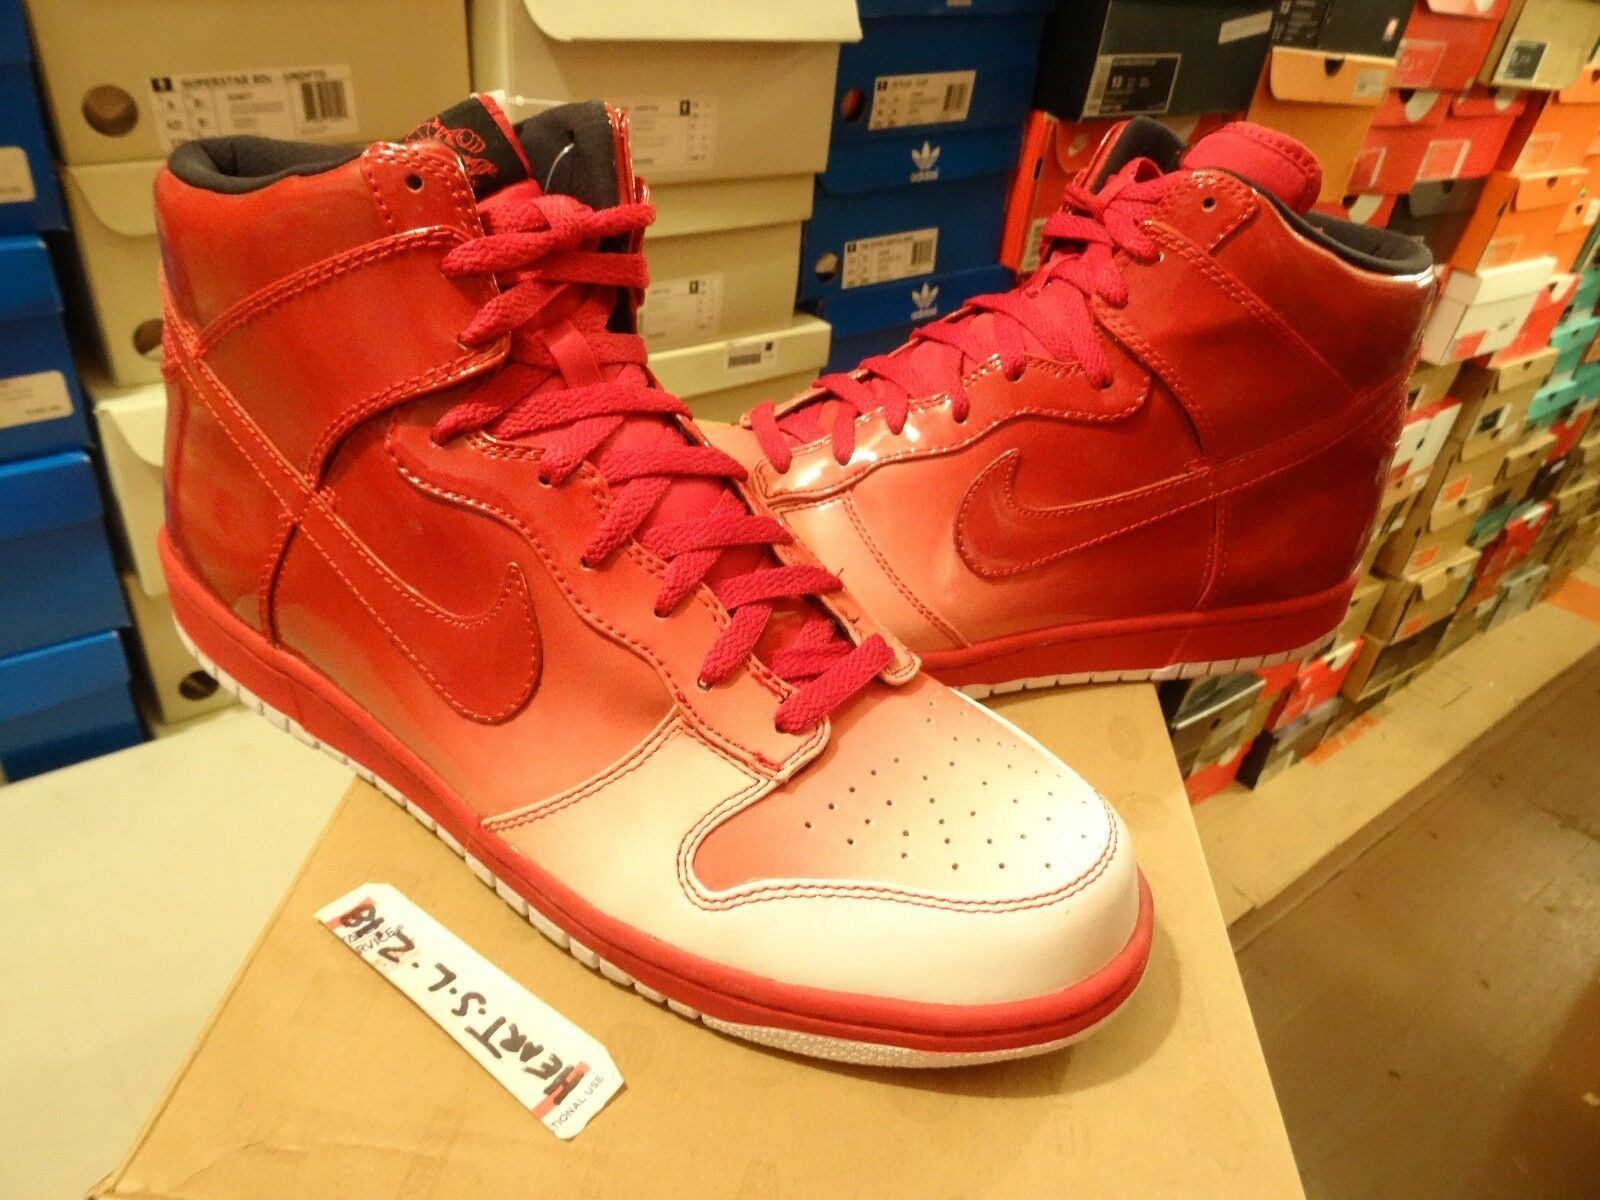 e90a637c5df NEW Nike Dunk SB High Spark Destroyers Pack RED 349710-161 SZ 13 DOOM  Supreme njhqfh5282-Athletic Shoes